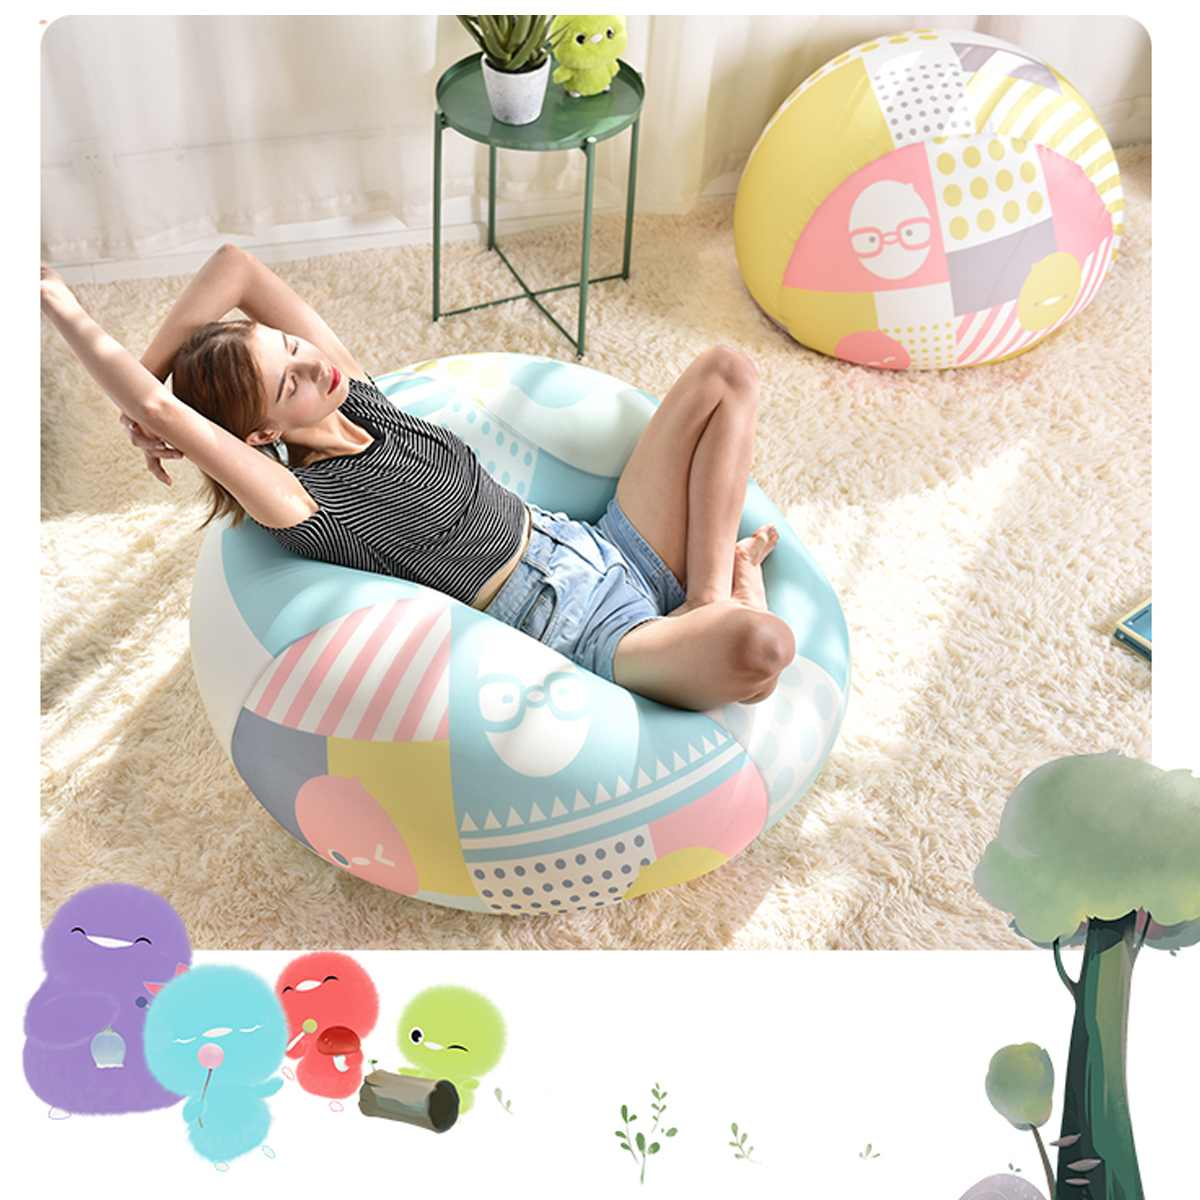 Bean Bag Sofa Chair Cover Lounger Sofa Ottoman Seat Living Room Furniture Without Filler Beanbag Bed Pouf Puff Couch Lazy TatamiBean Bag Sofa Chair Cover Lounger Sofa Ottoman Seat Living Room Furniture Without Filler Beanbag Bed Pouf Puff Couch Lazy Tatami